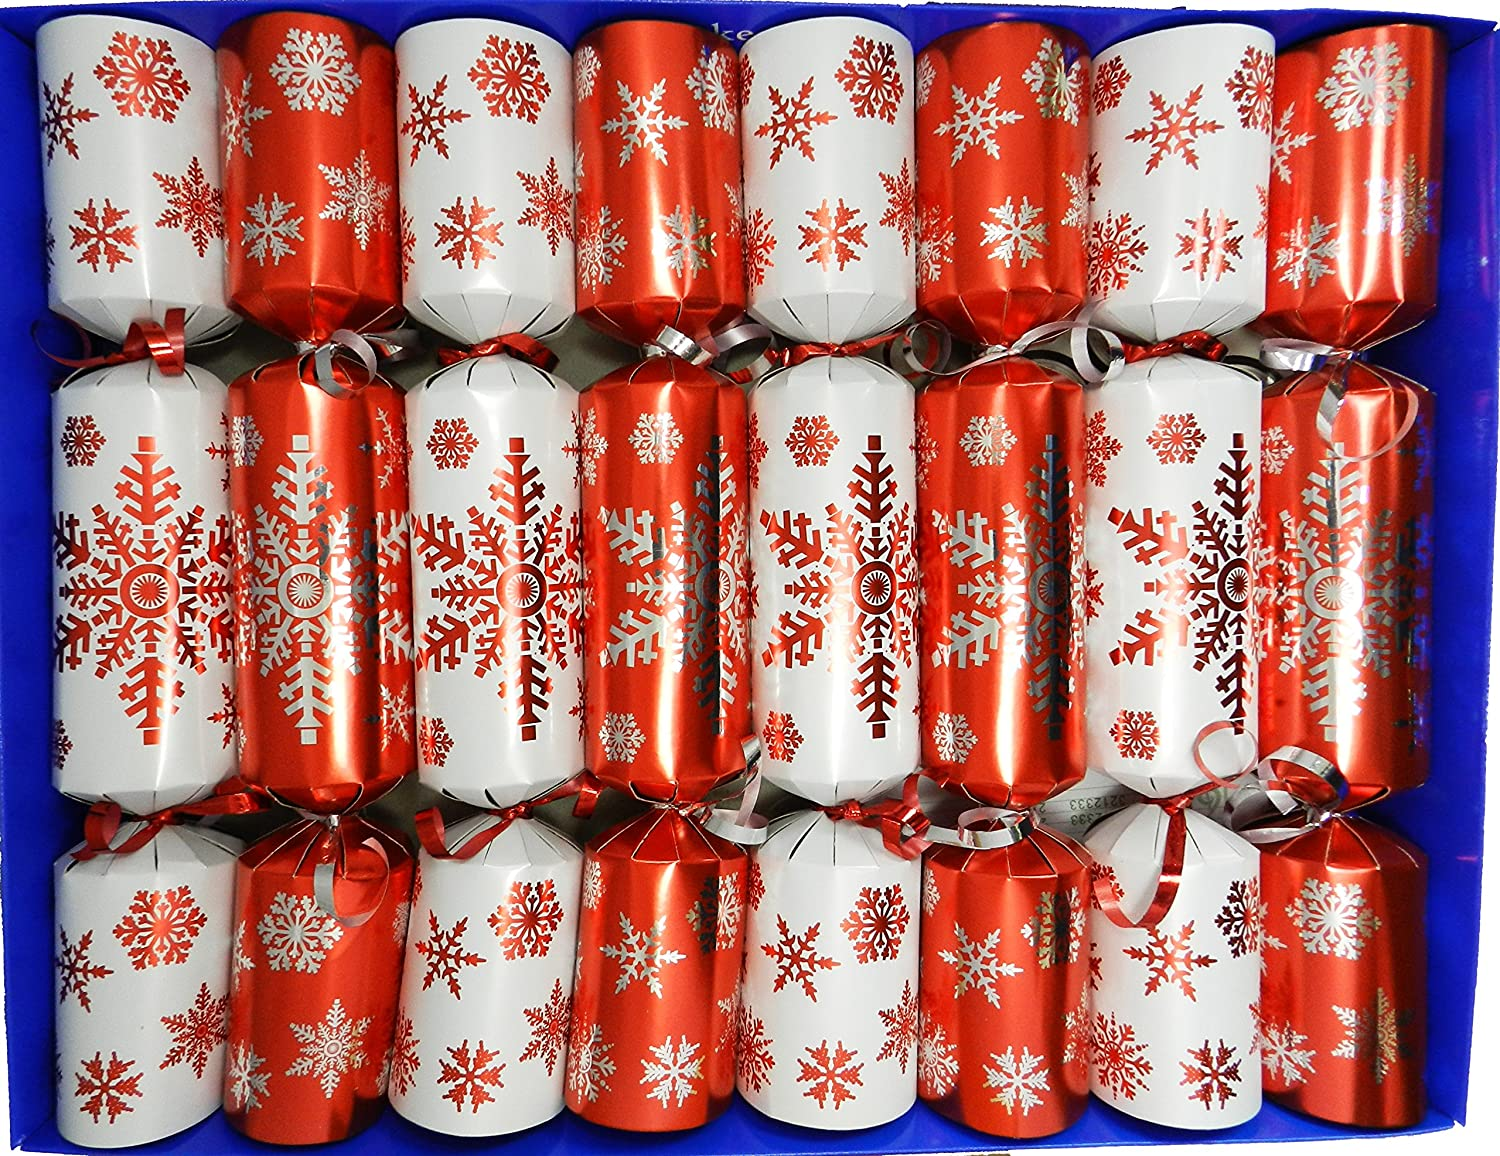 Set of 8 Family Fun Magic Tricks Christmas Crackers - Red Snowflake Design by Crackers Ltd (Cat F1)